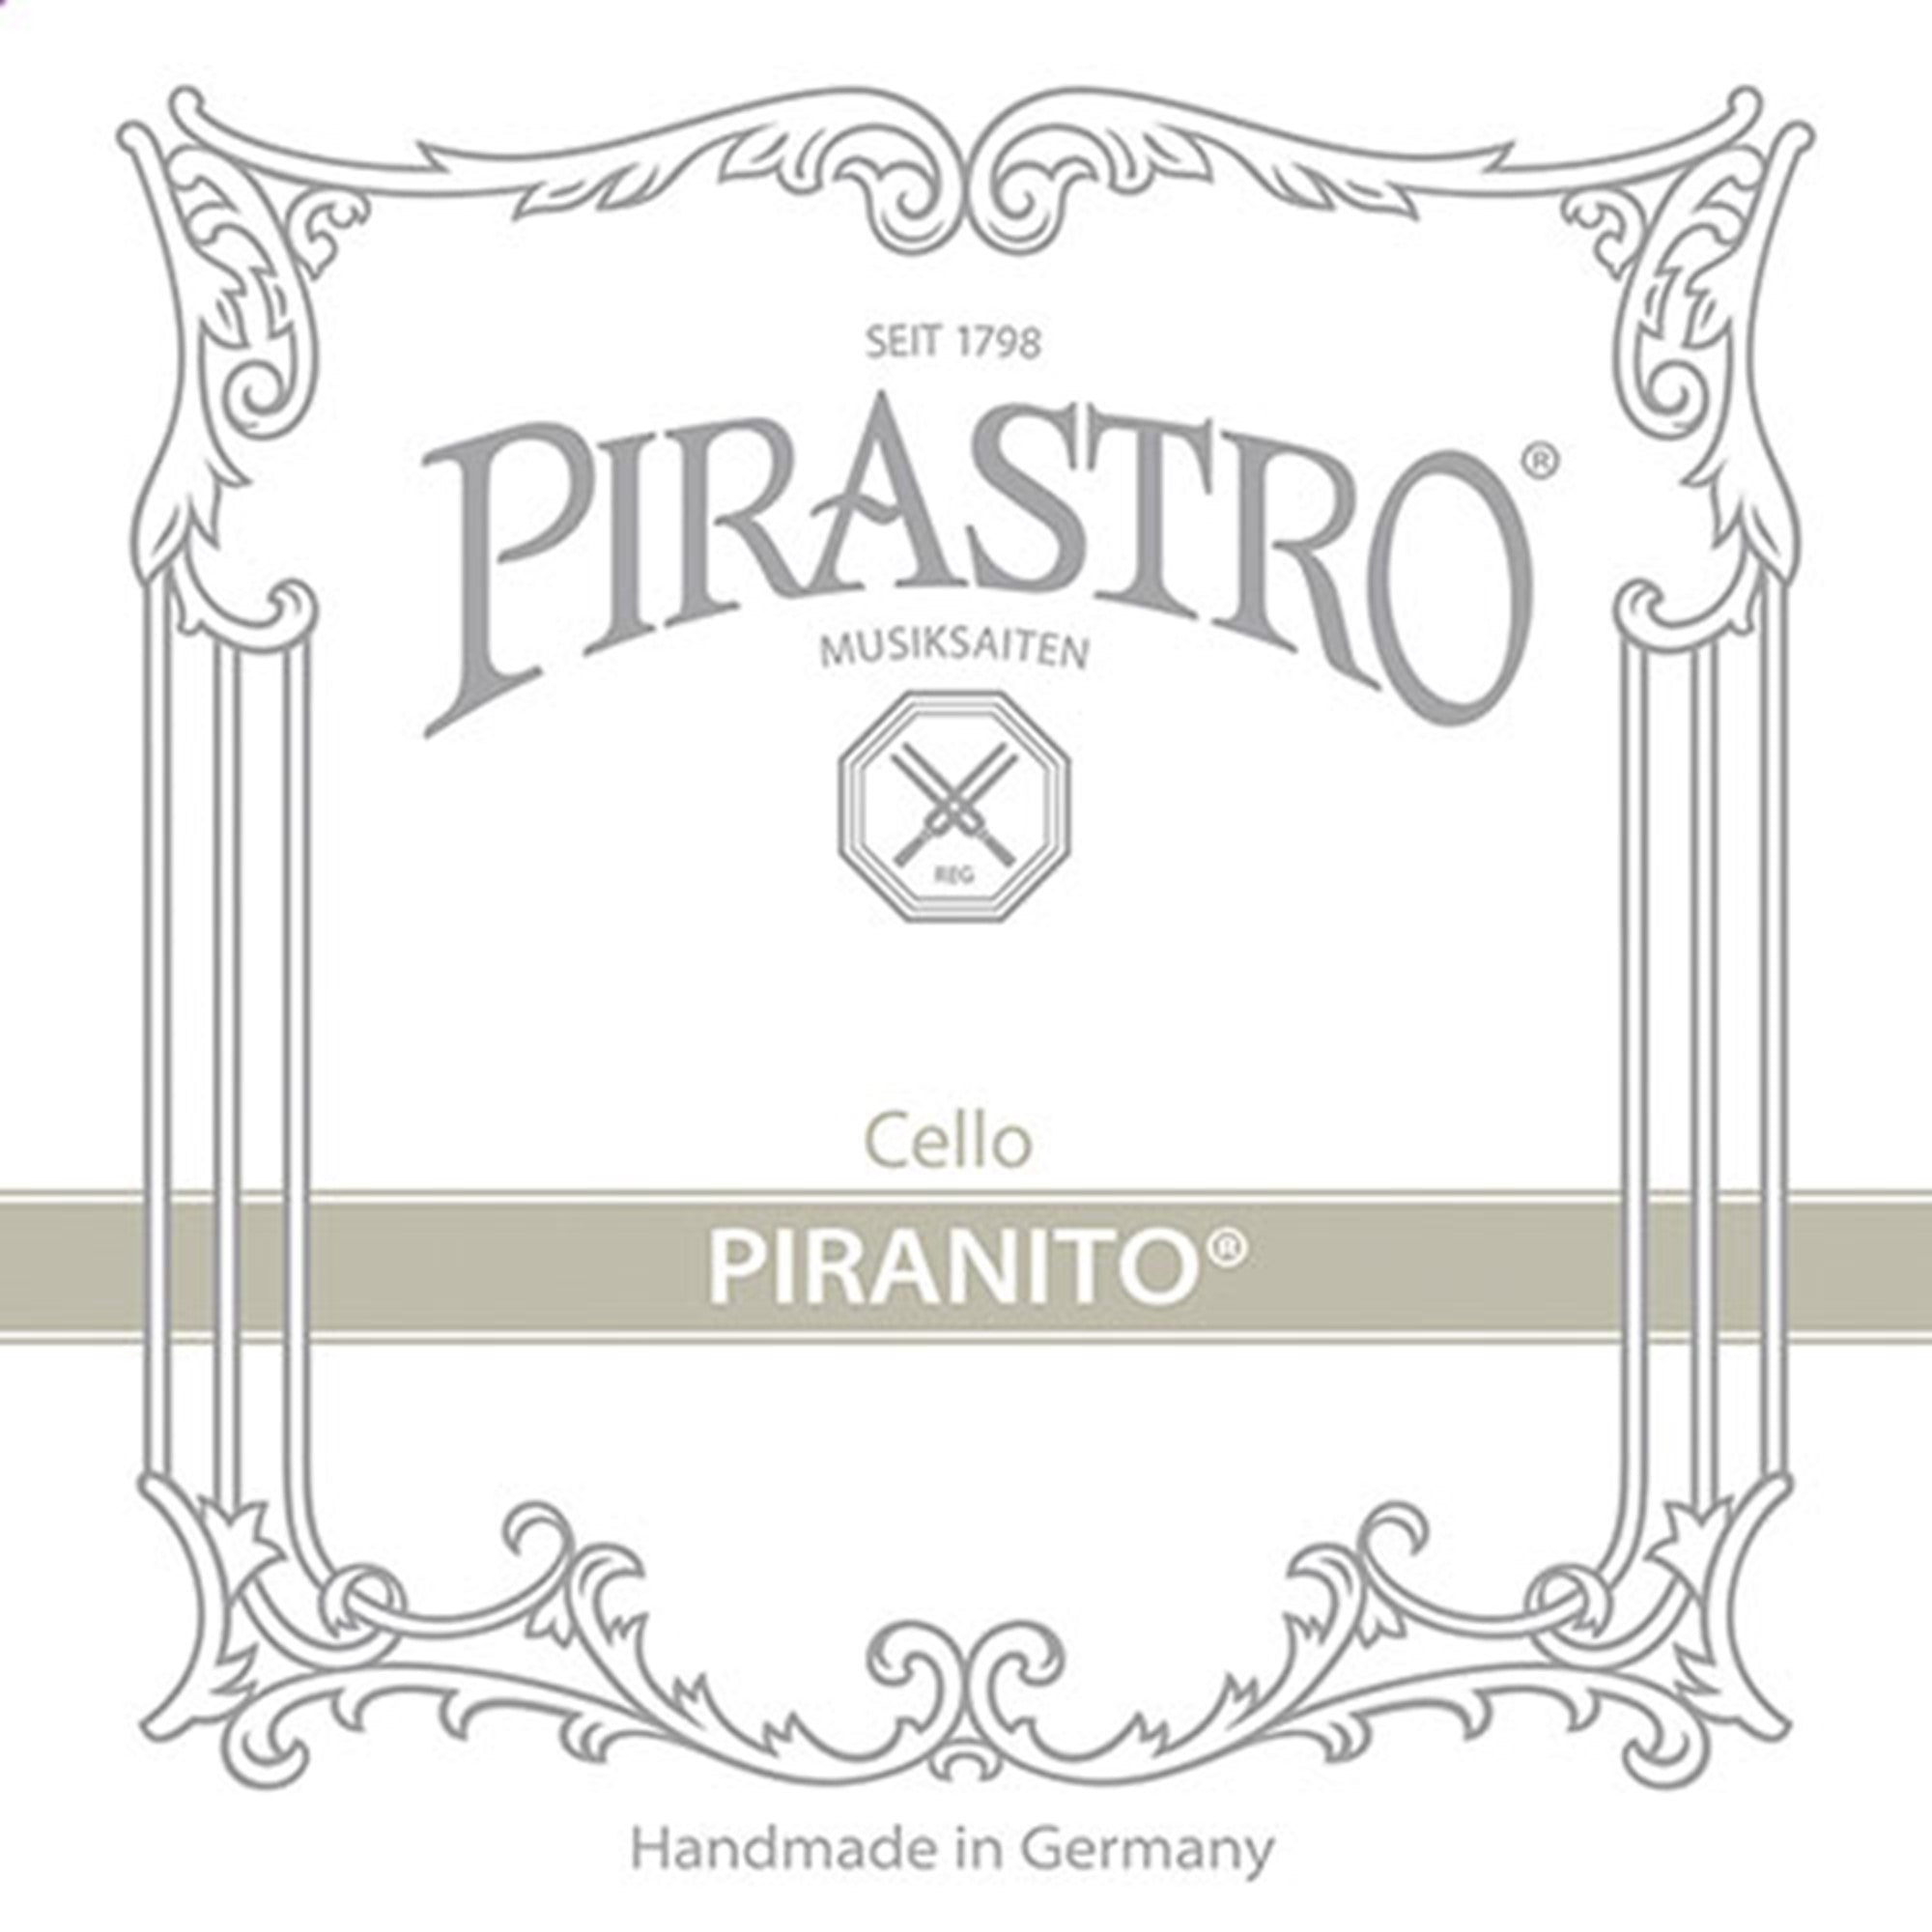 Pirastro Piranito Cello C String